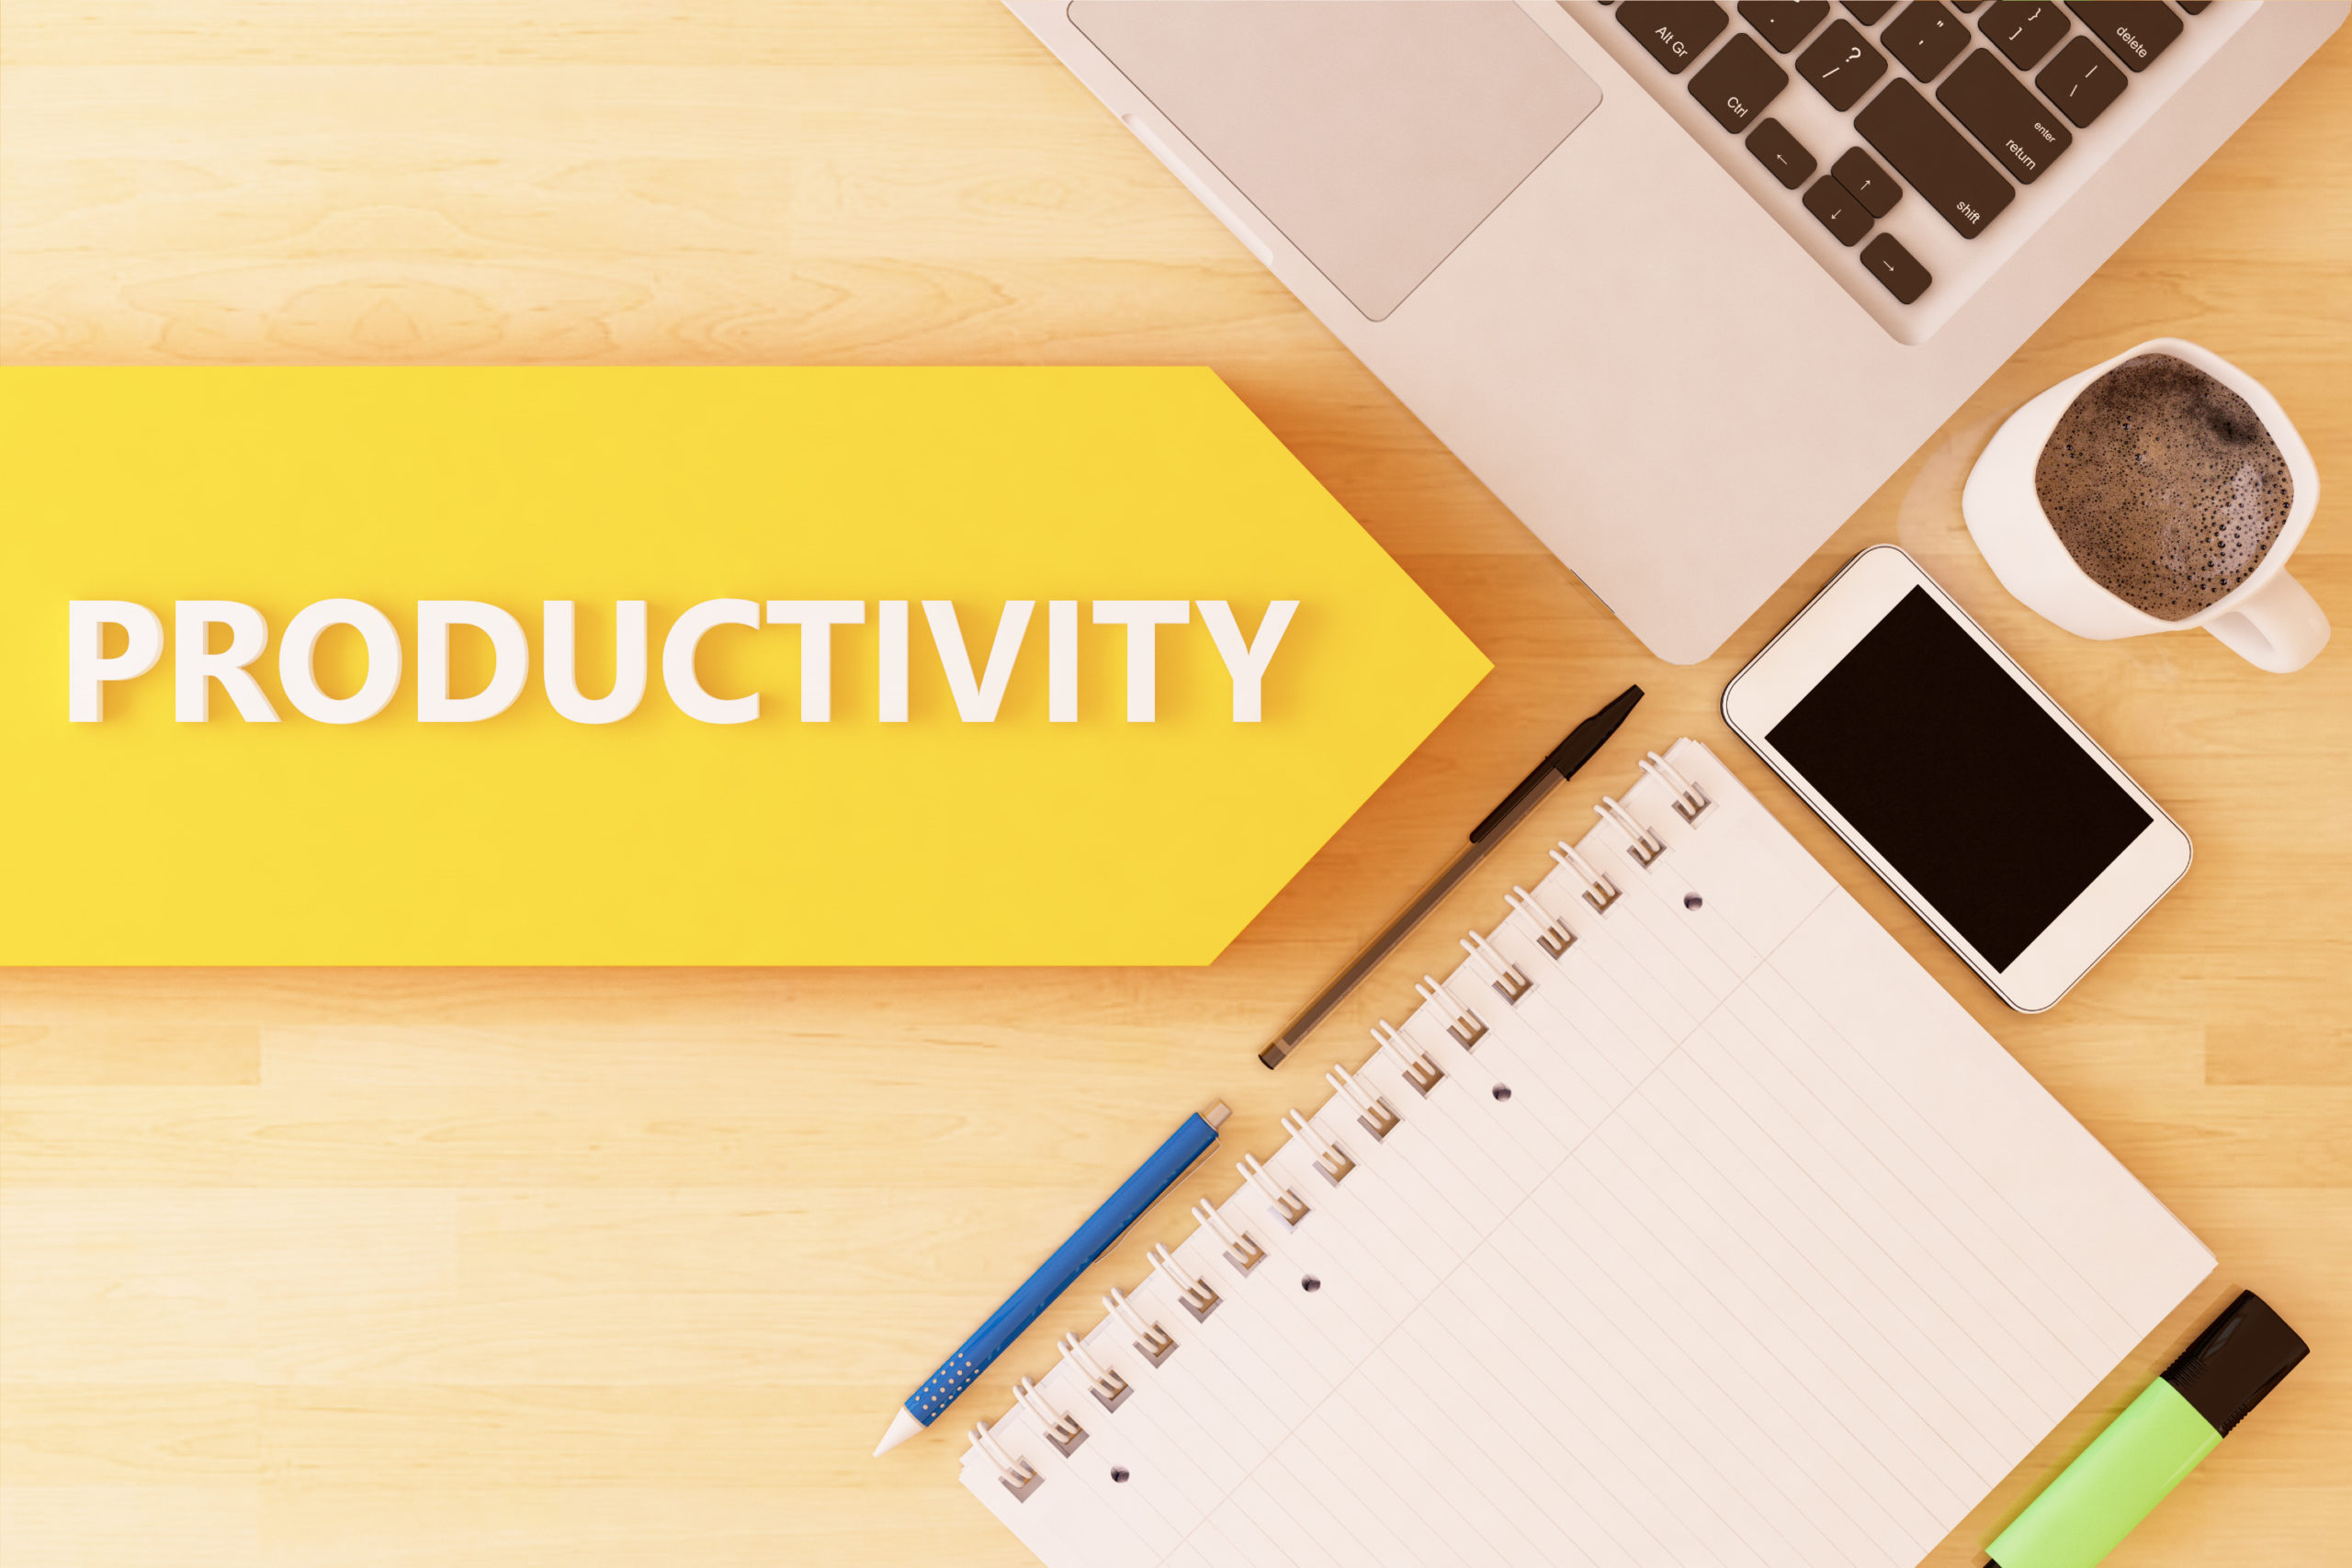 10 ideas to stay productive during Covid-19 as a freelancer